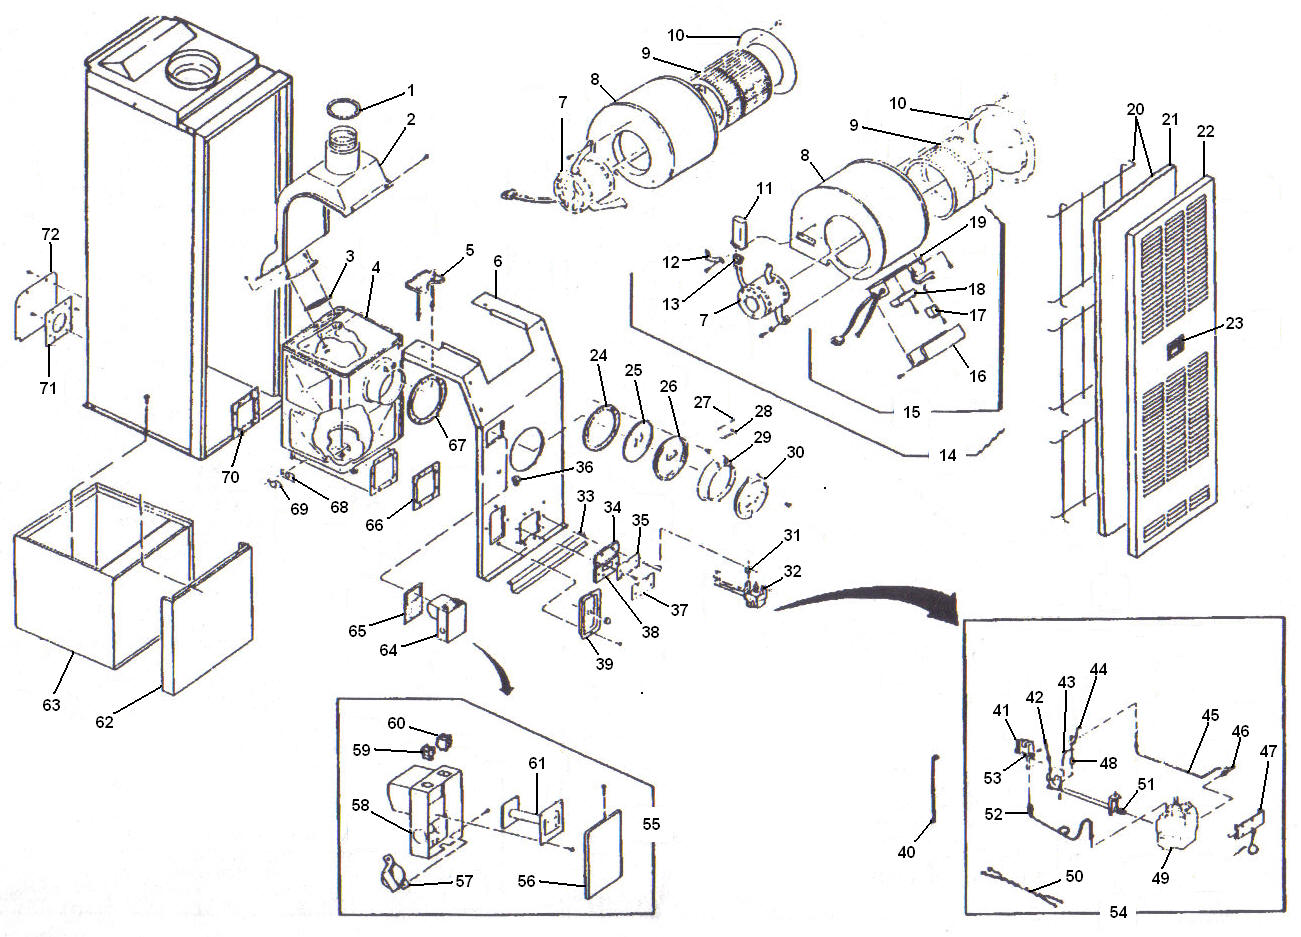 miller electric furnace wiring diagram cat6a plug parts facias new page 5 mobilehomefurnacecom saveenlarge nordyne